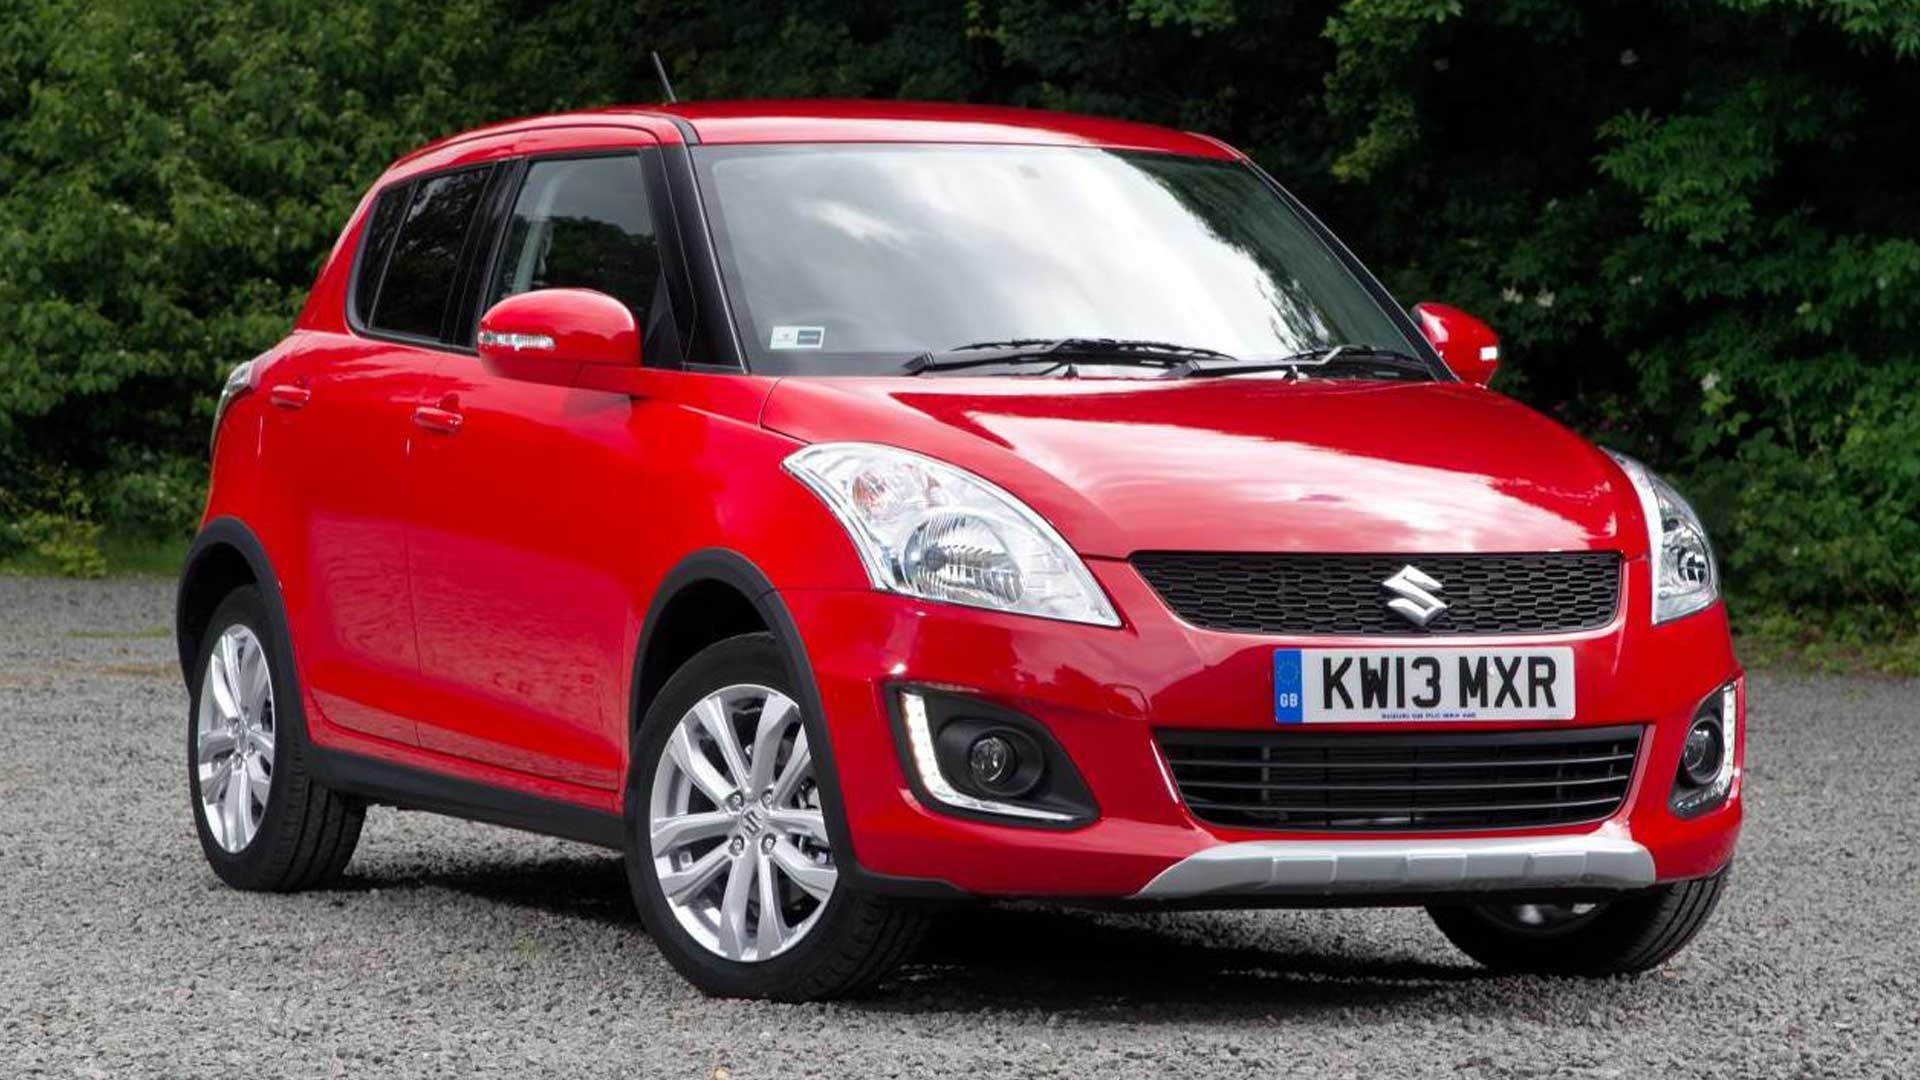 Maruti Suzuki Swift 2015 Ldi O Price Mileage Reviews